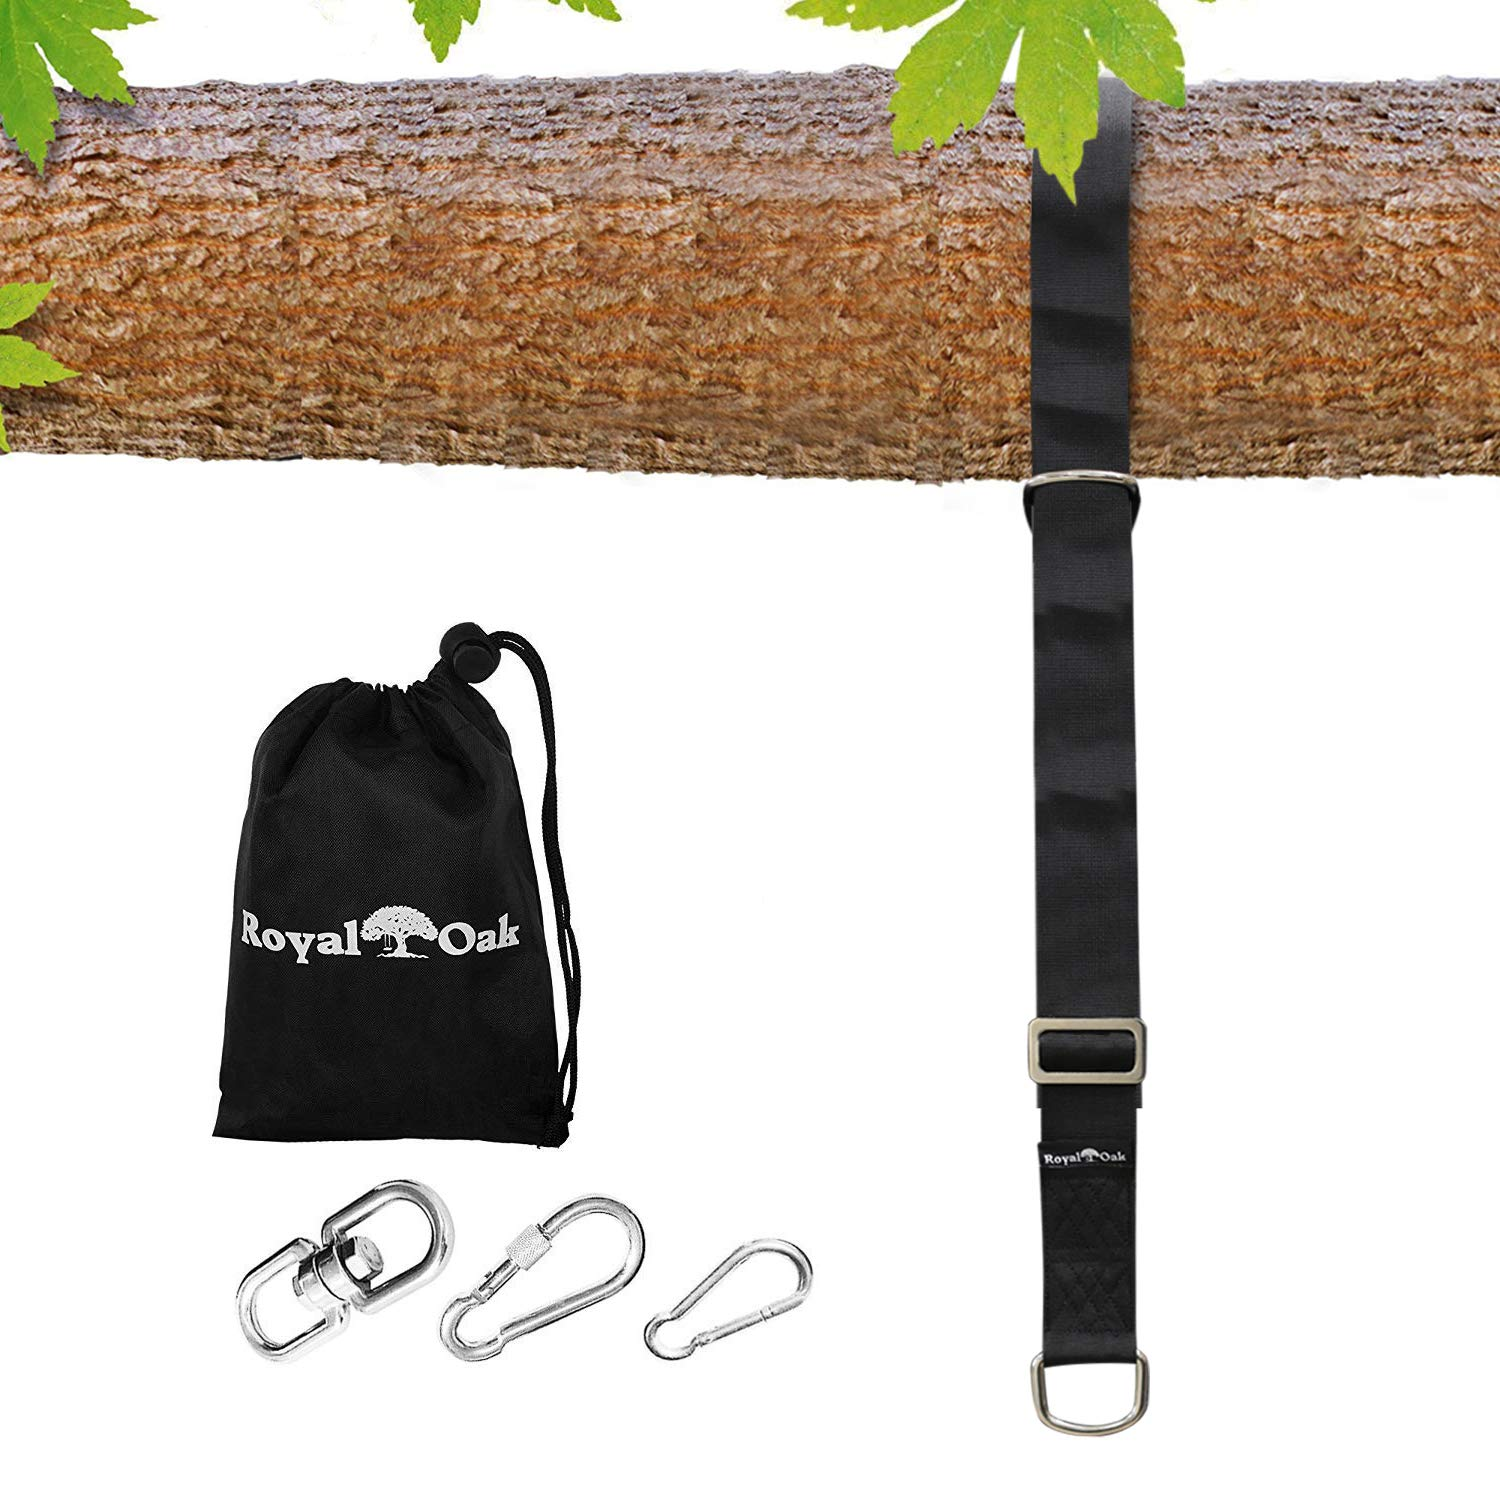 - Heavy Duty Carabiner ADJUSTABLE TREE SWING STRAP X1 Carry Bag Included 8FT Picture Instructions Holds 2200lbs EASY HANG Waterproof Bonus Spinner Perfect for Tire and Saucer Swings